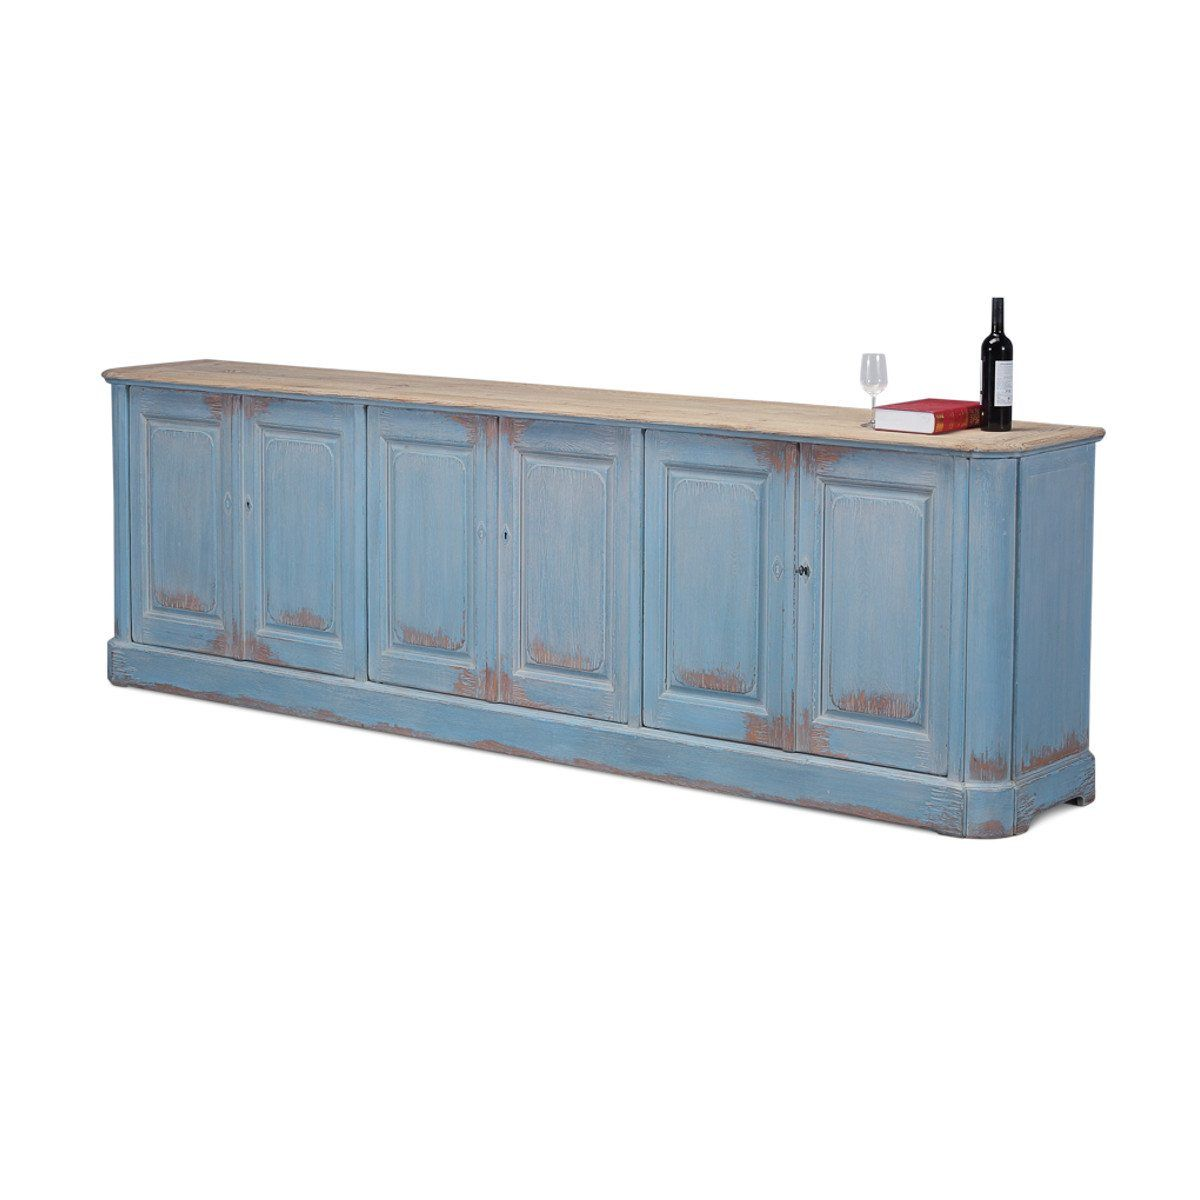 Contact Support Rustic Sideboard Sideboard Cabinet Solid Wood Sideboard